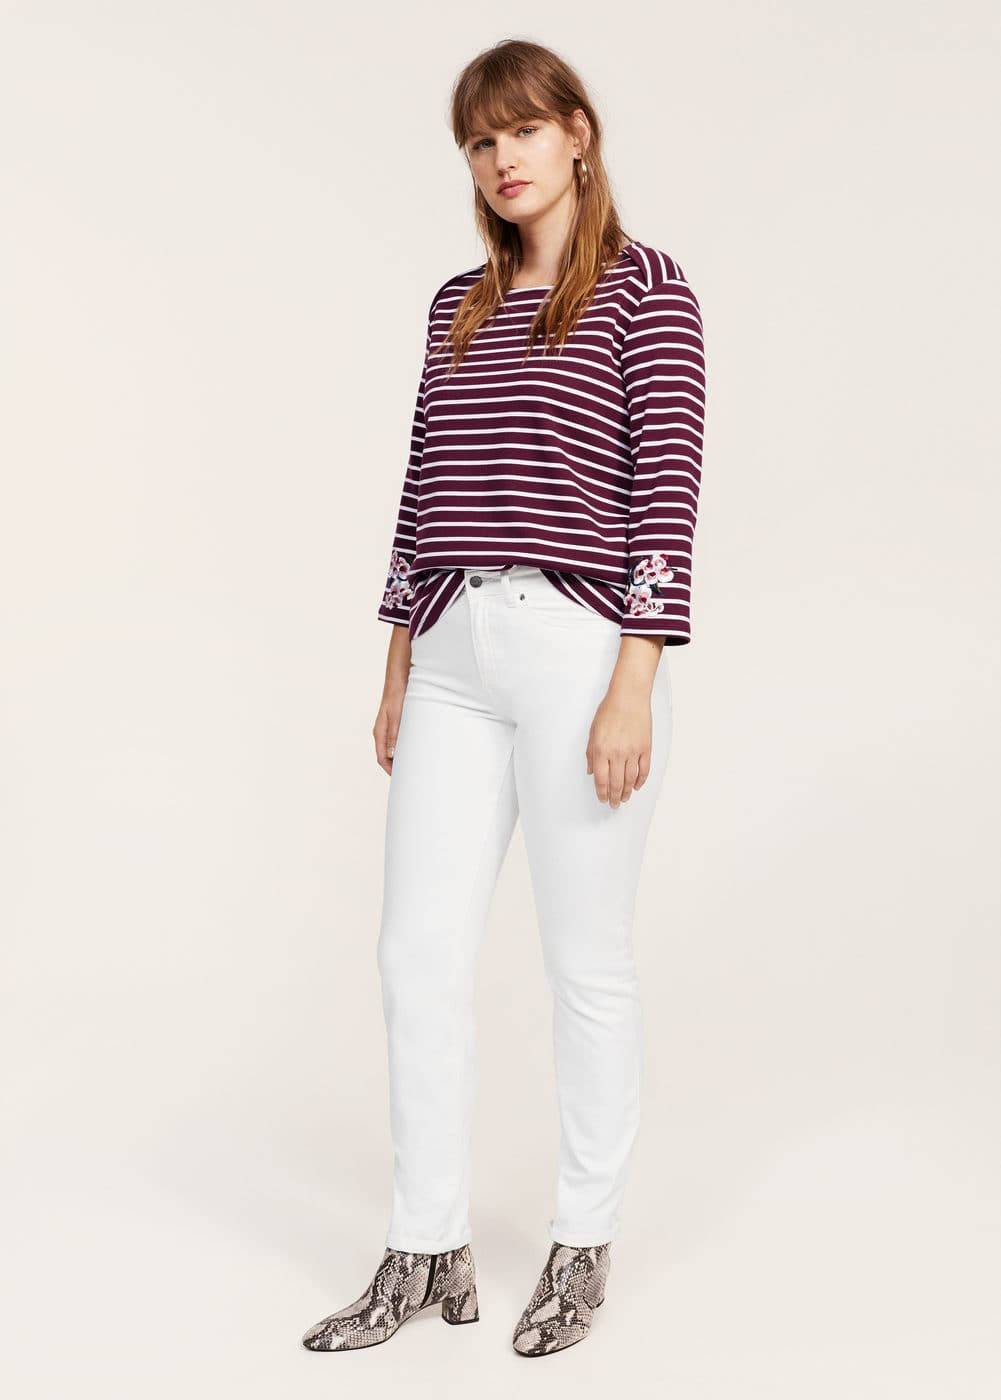 Embroidery striped t-shirt | VIOLETA BY MANGO